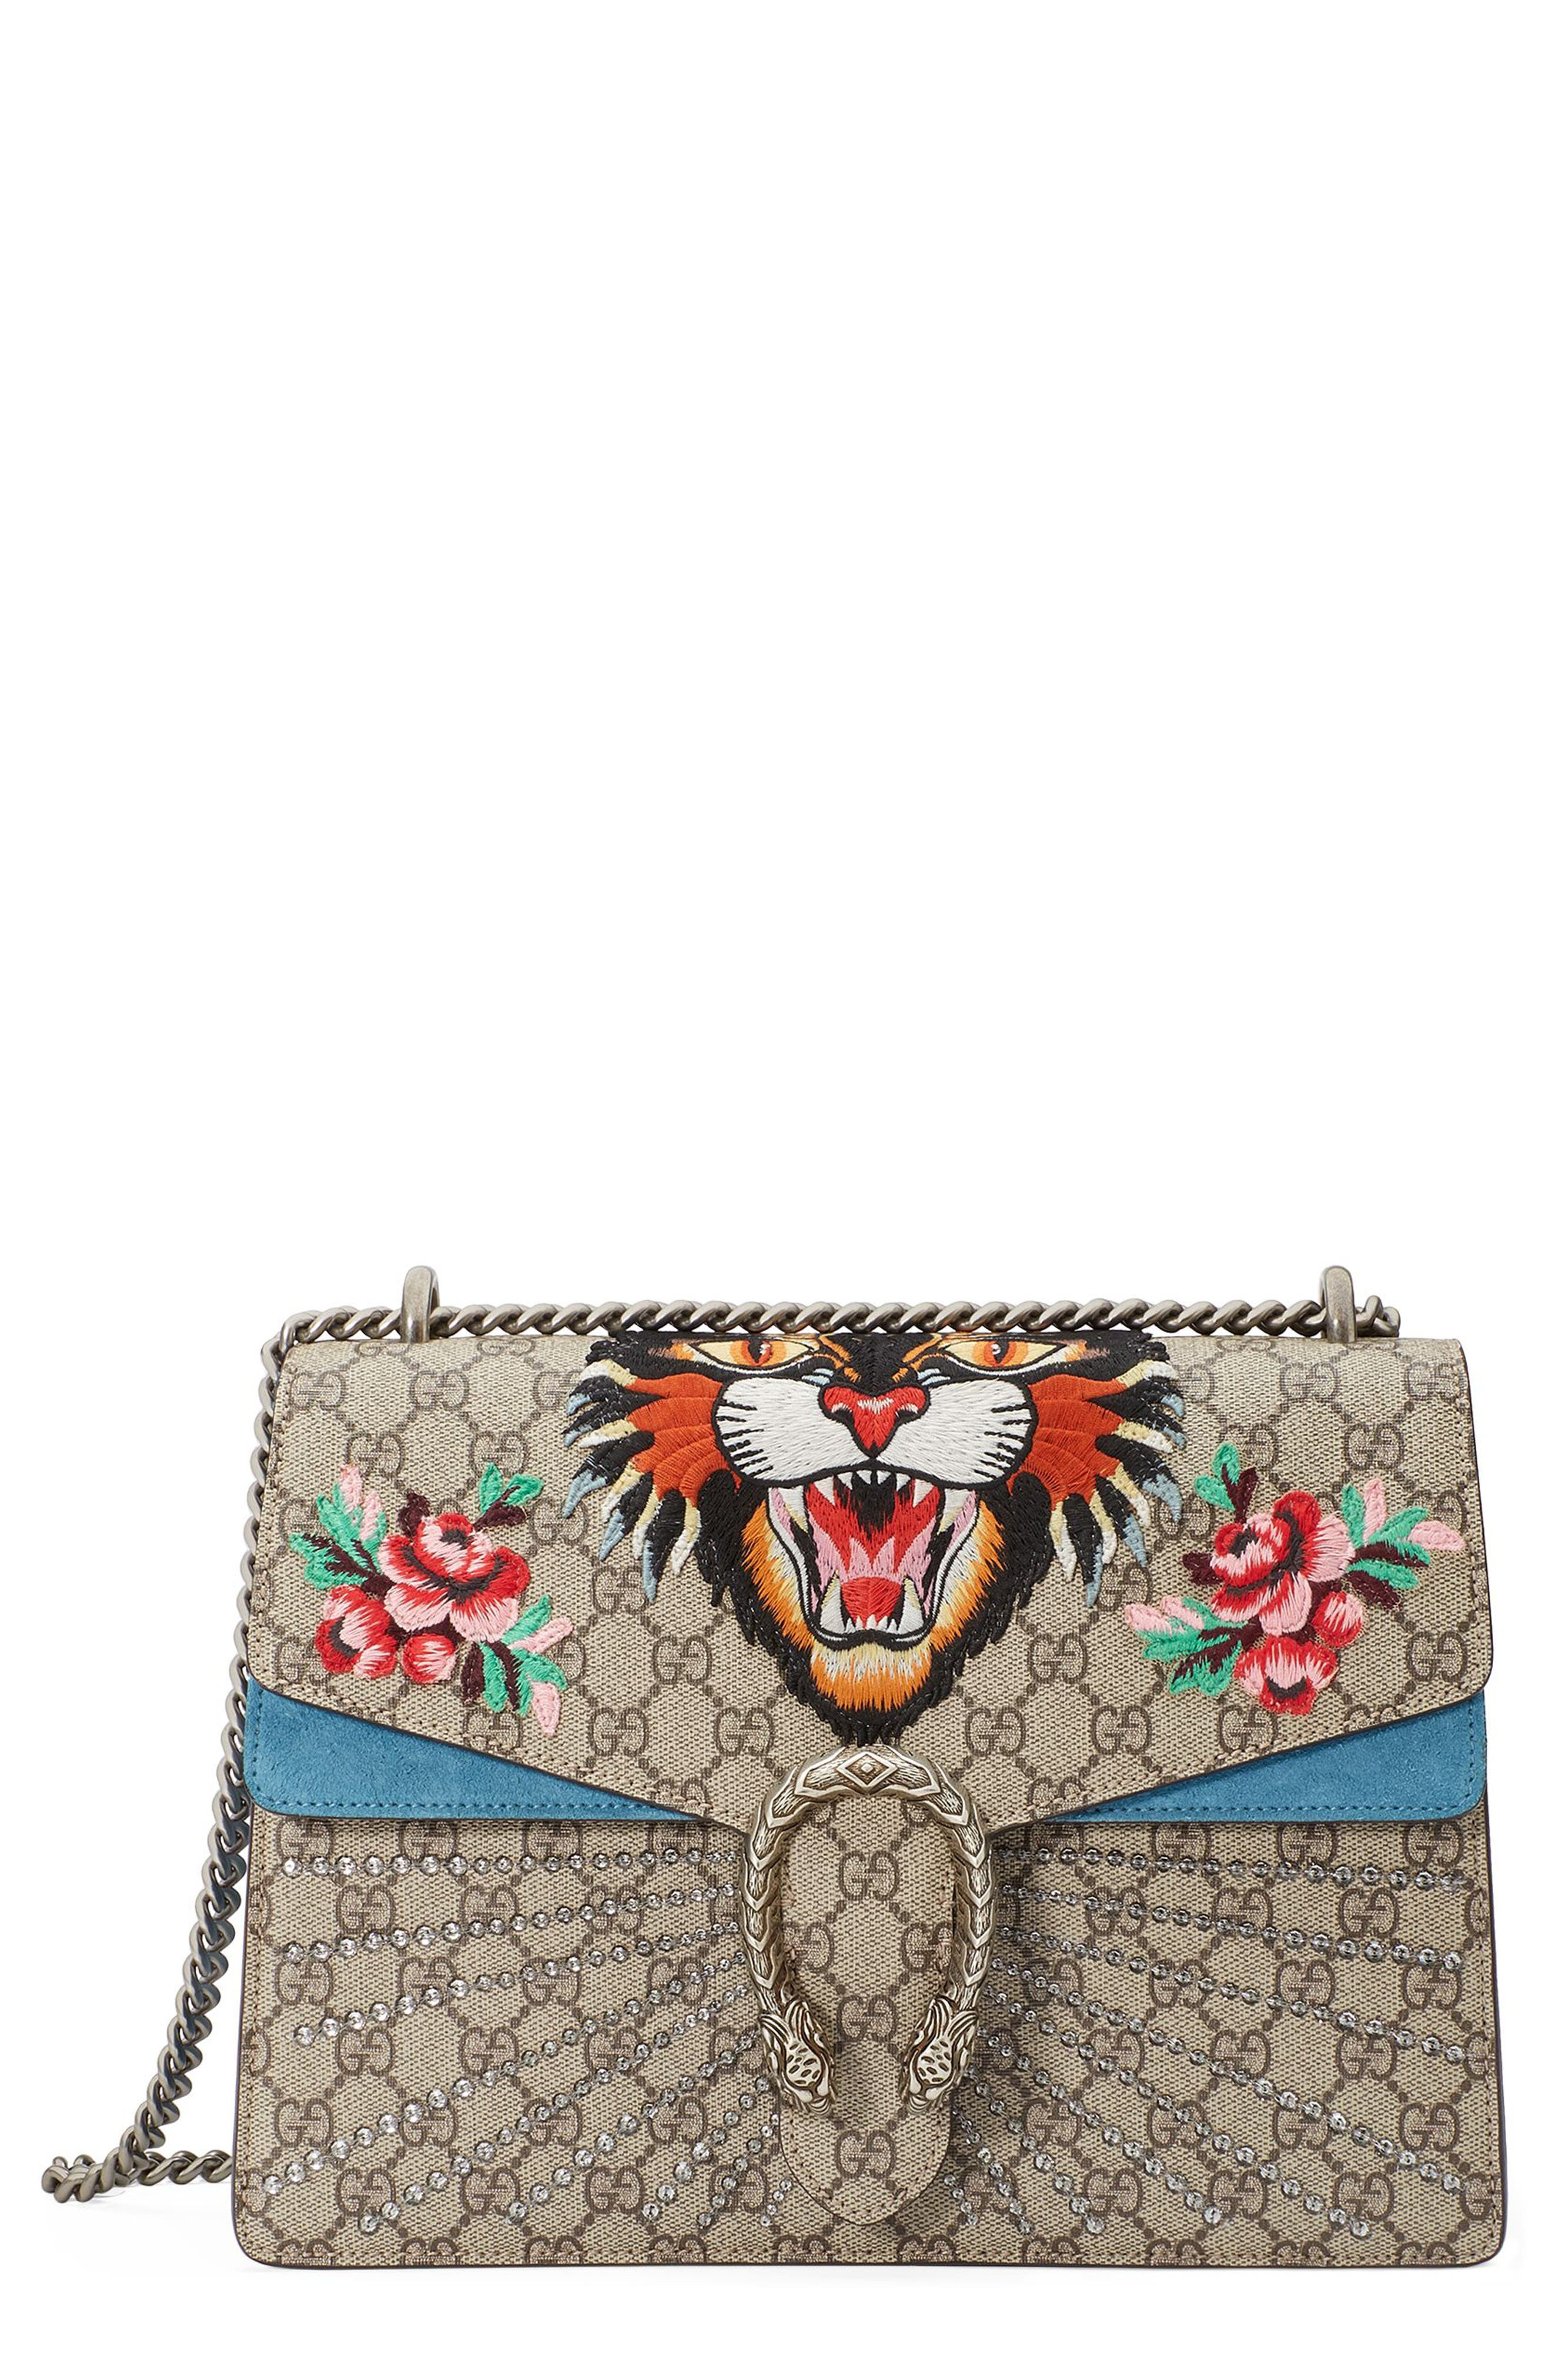 Main Image - Gucci Medium Angry Cat GG Supreme Canvas & Suede Shoulder Bag